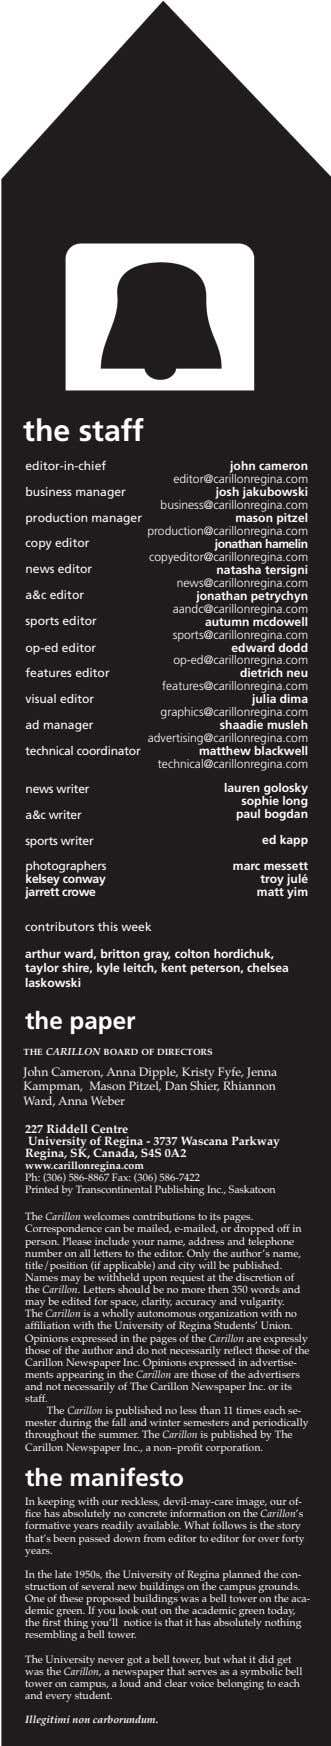 the staff editor-in-chief business manager production manager copy editor news editor a&c editor sports editor